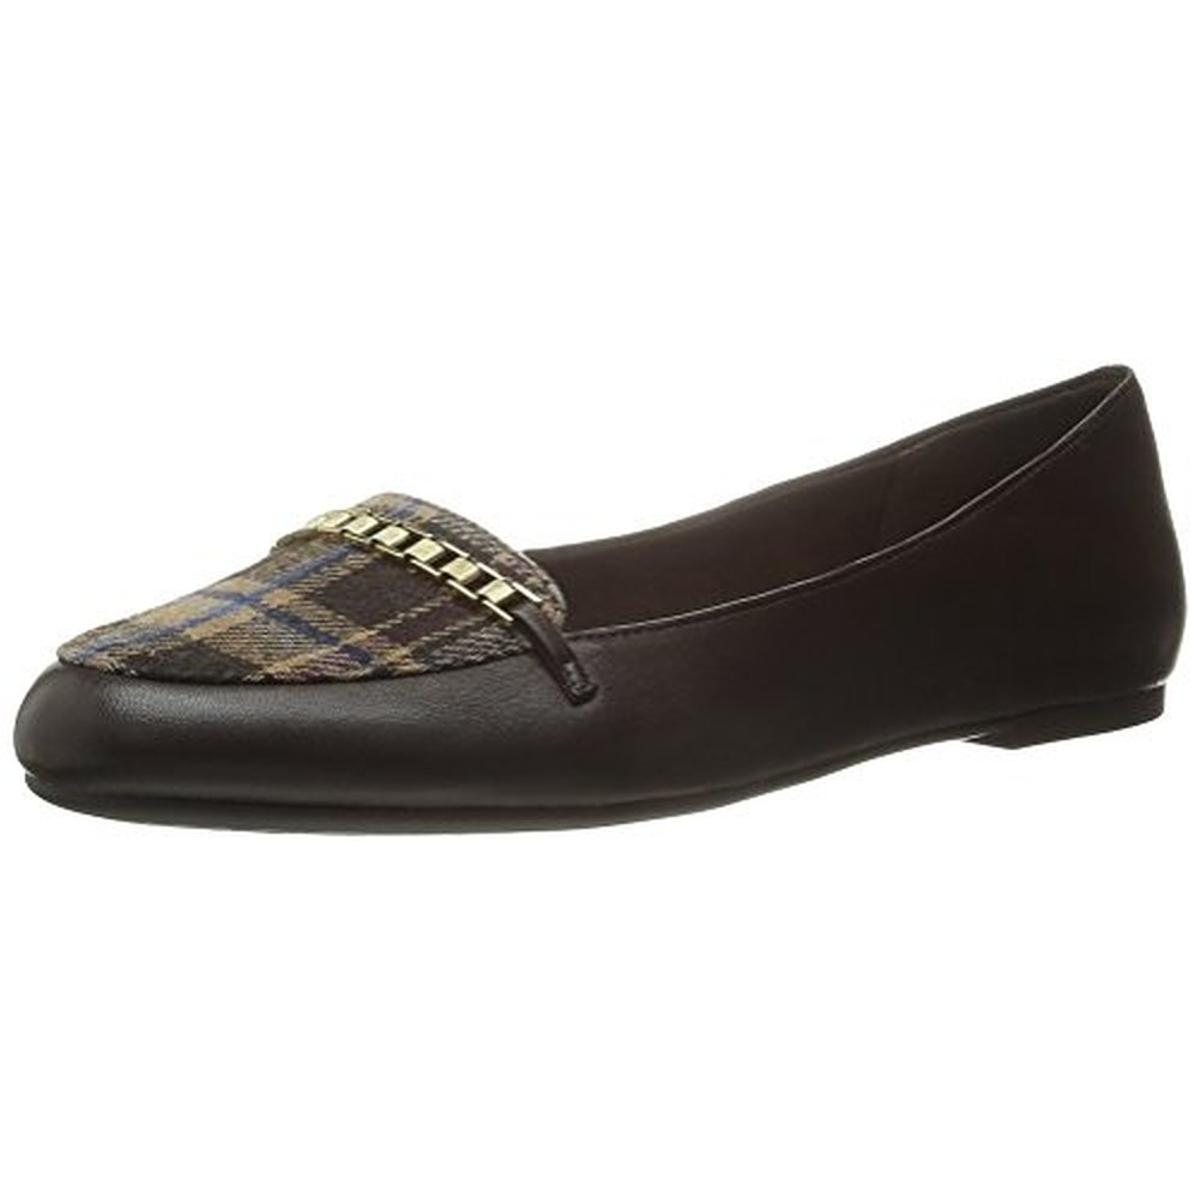 Bella Vita Womens Thora Leather Slip On Ballet Flats by Bella Vita